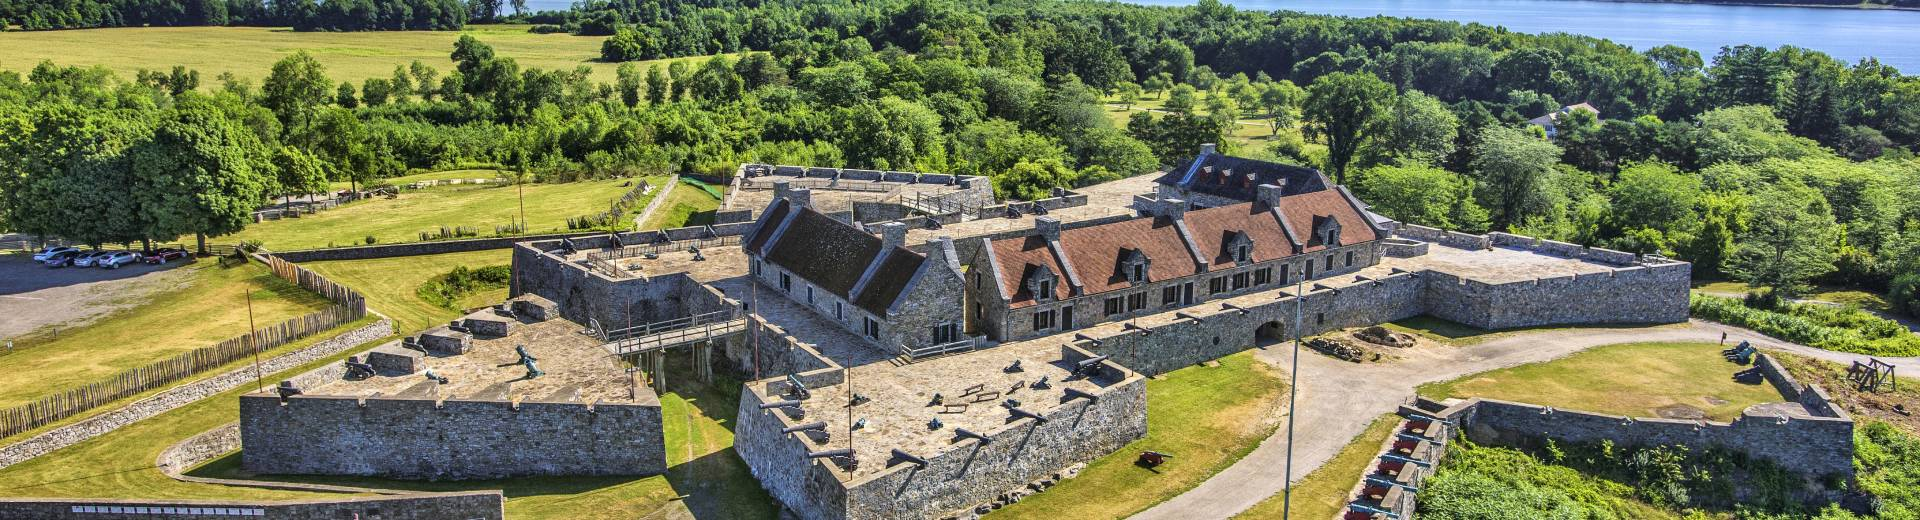 Aerial view of Fort Ticonderoga